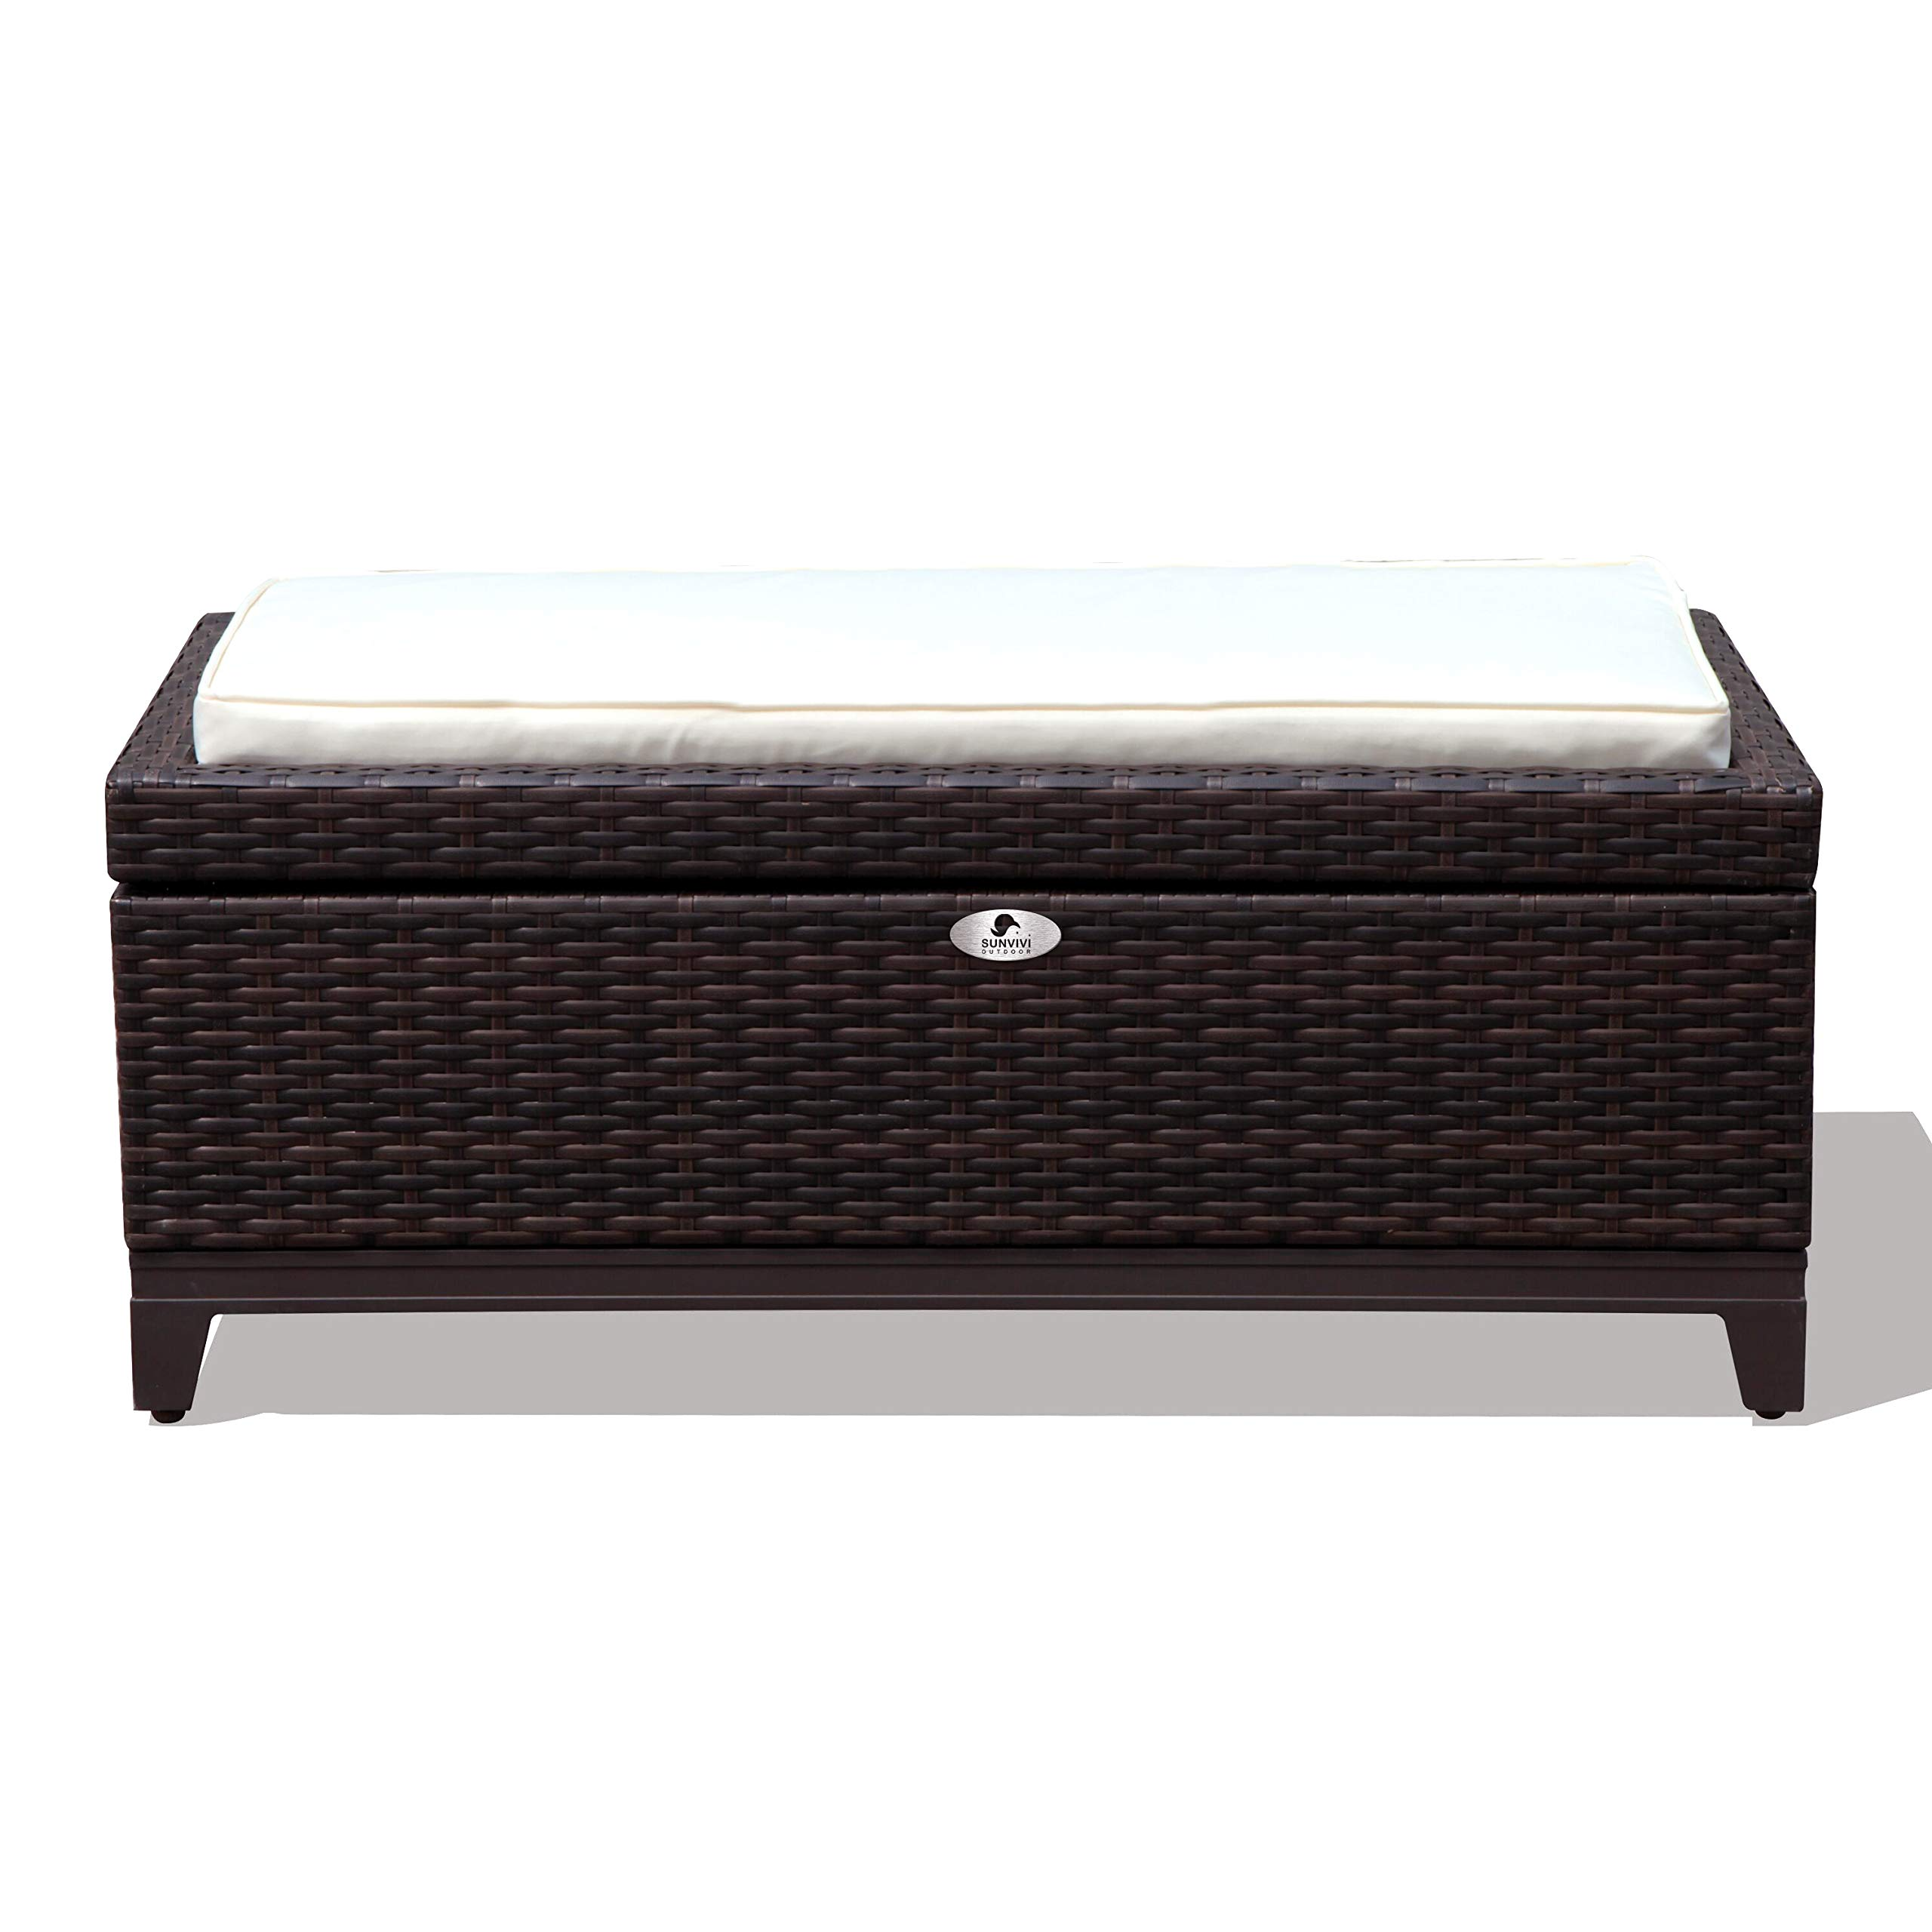 Sunvivi Outdoor Wicker Deck Storage Box for Cushions, Pillows, Pool Accessories, Ottoman Bench Aluminum Frame with Seat Cushion, Perfect Additional to Furniture Set - Espresso Brown